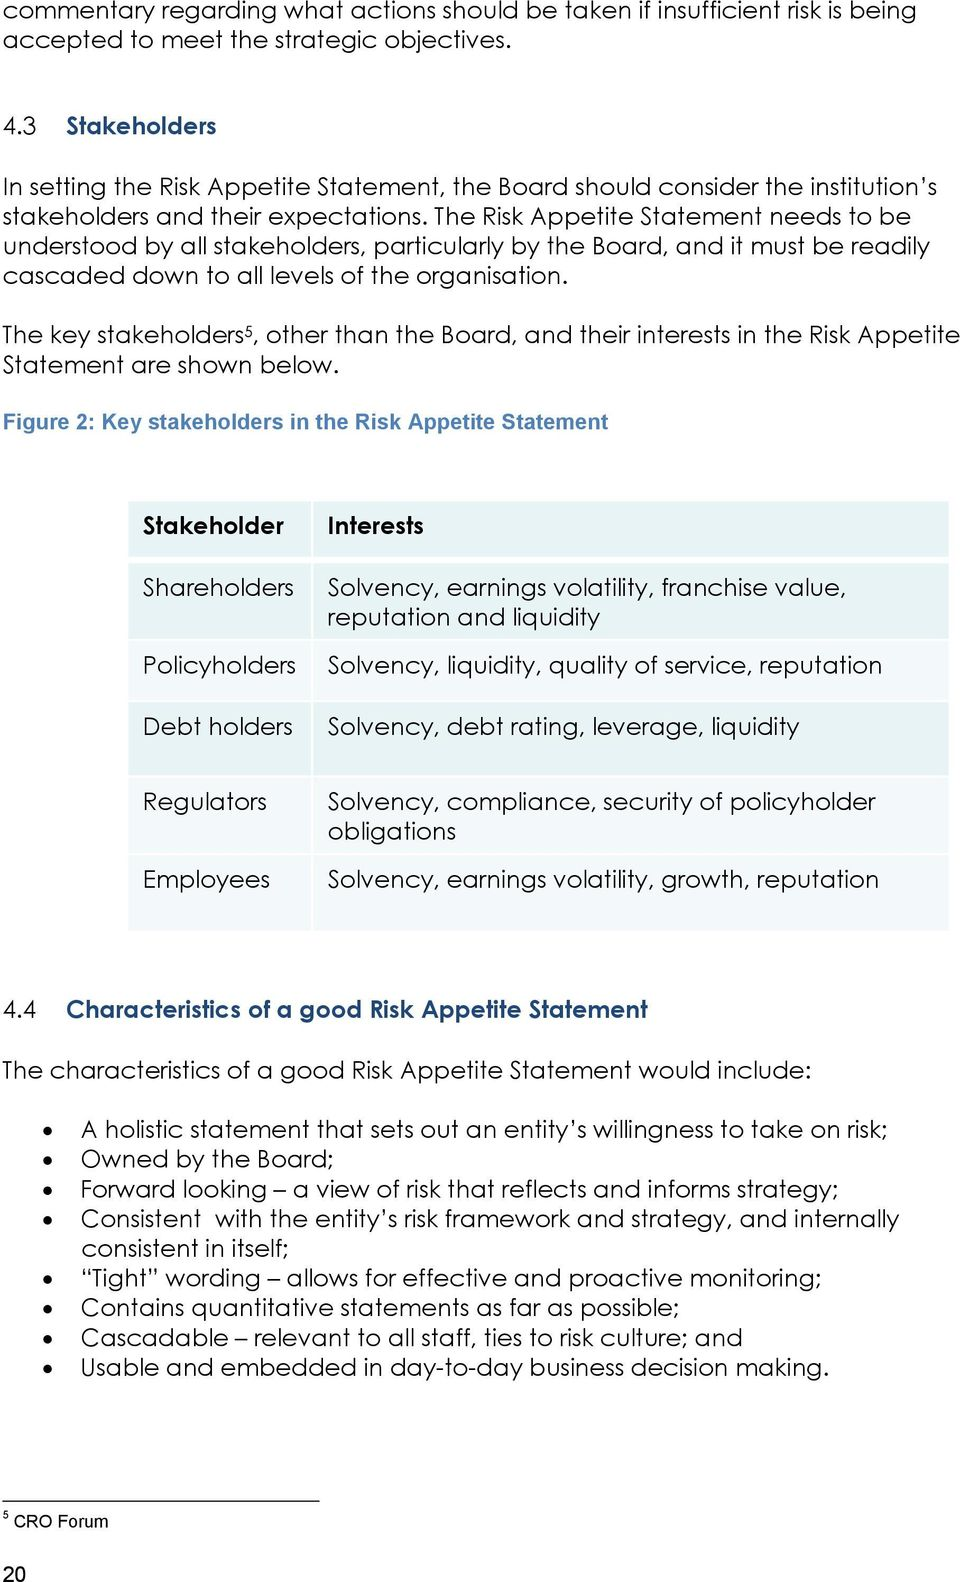 The Risk Appetite Statement needs to be understood by all stakeholders, particularly by the Board, and it must be readily cascaded down to all levels of the organisation.